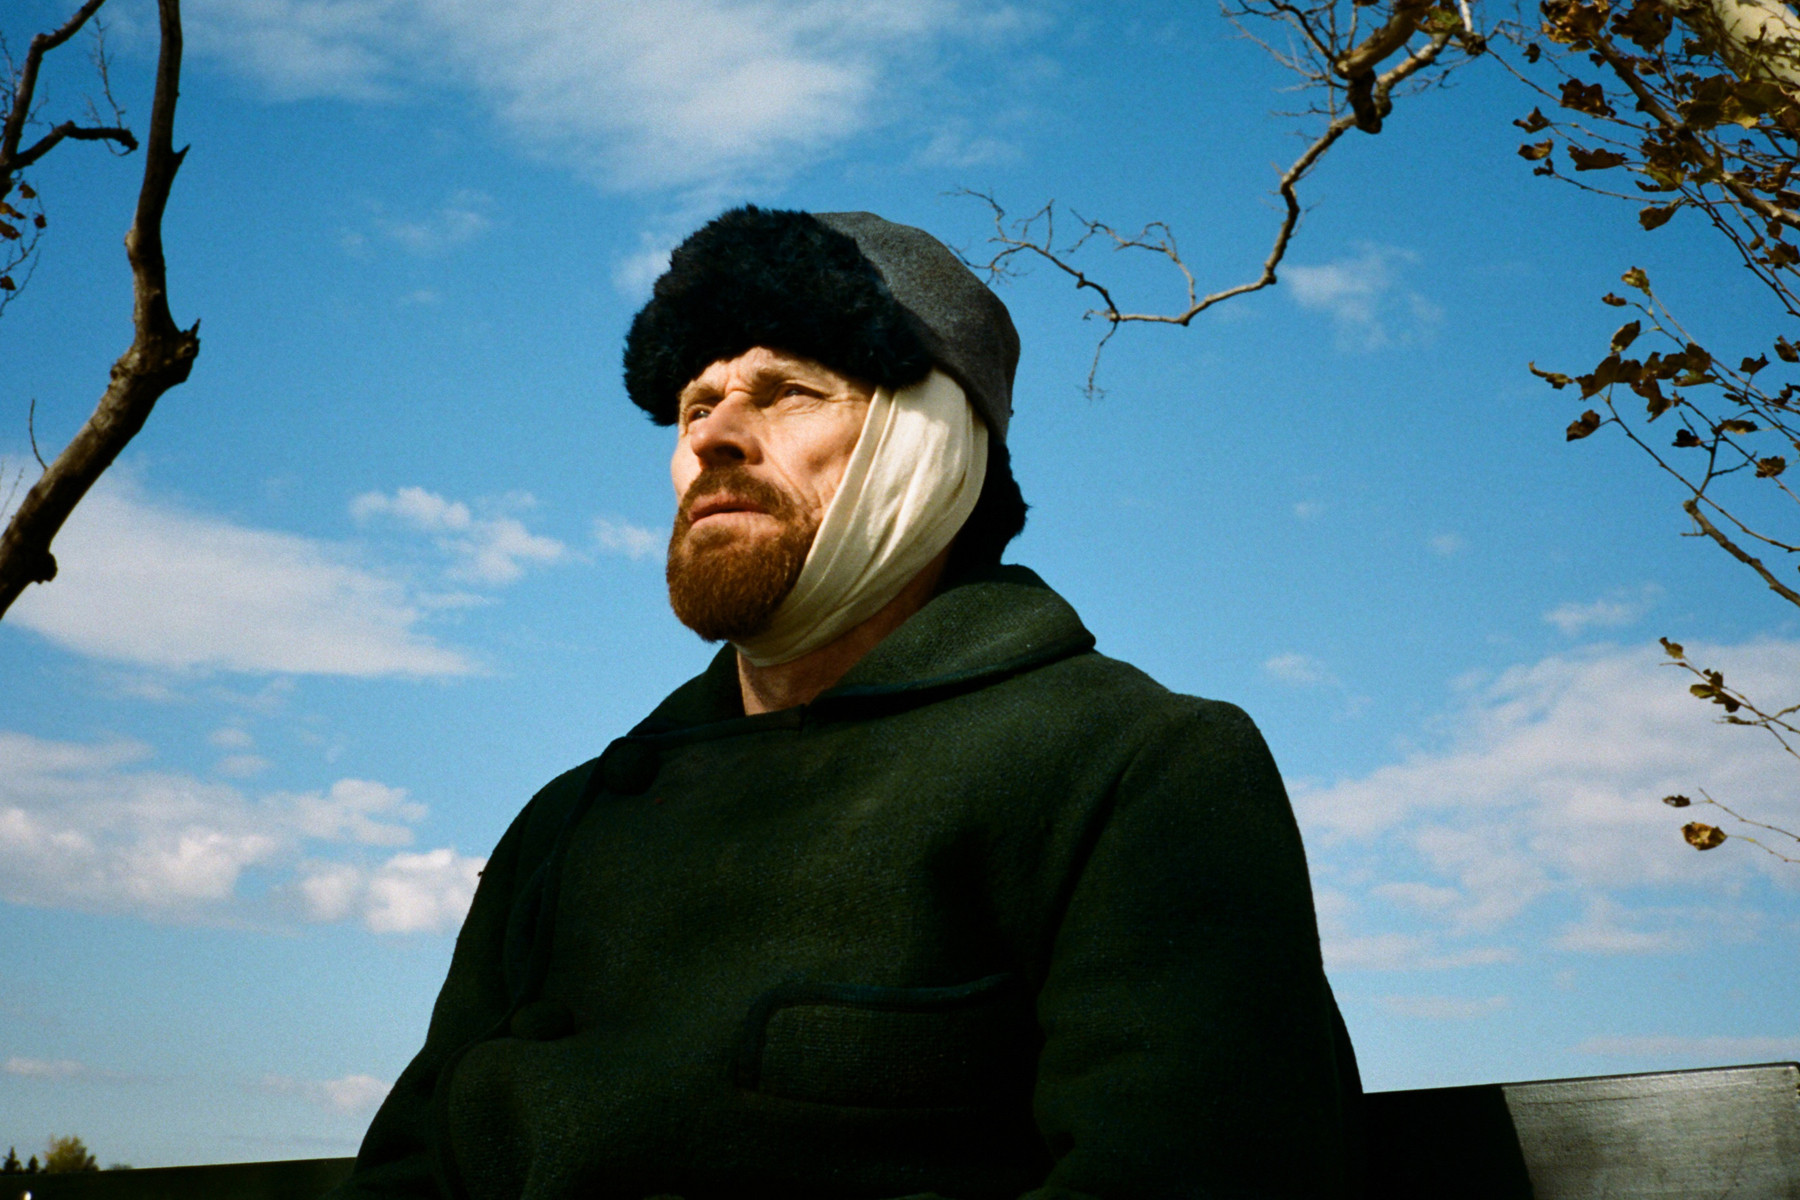 Willem Dafoe as Vincent Van Gogh in 'At Eternity's Gate'